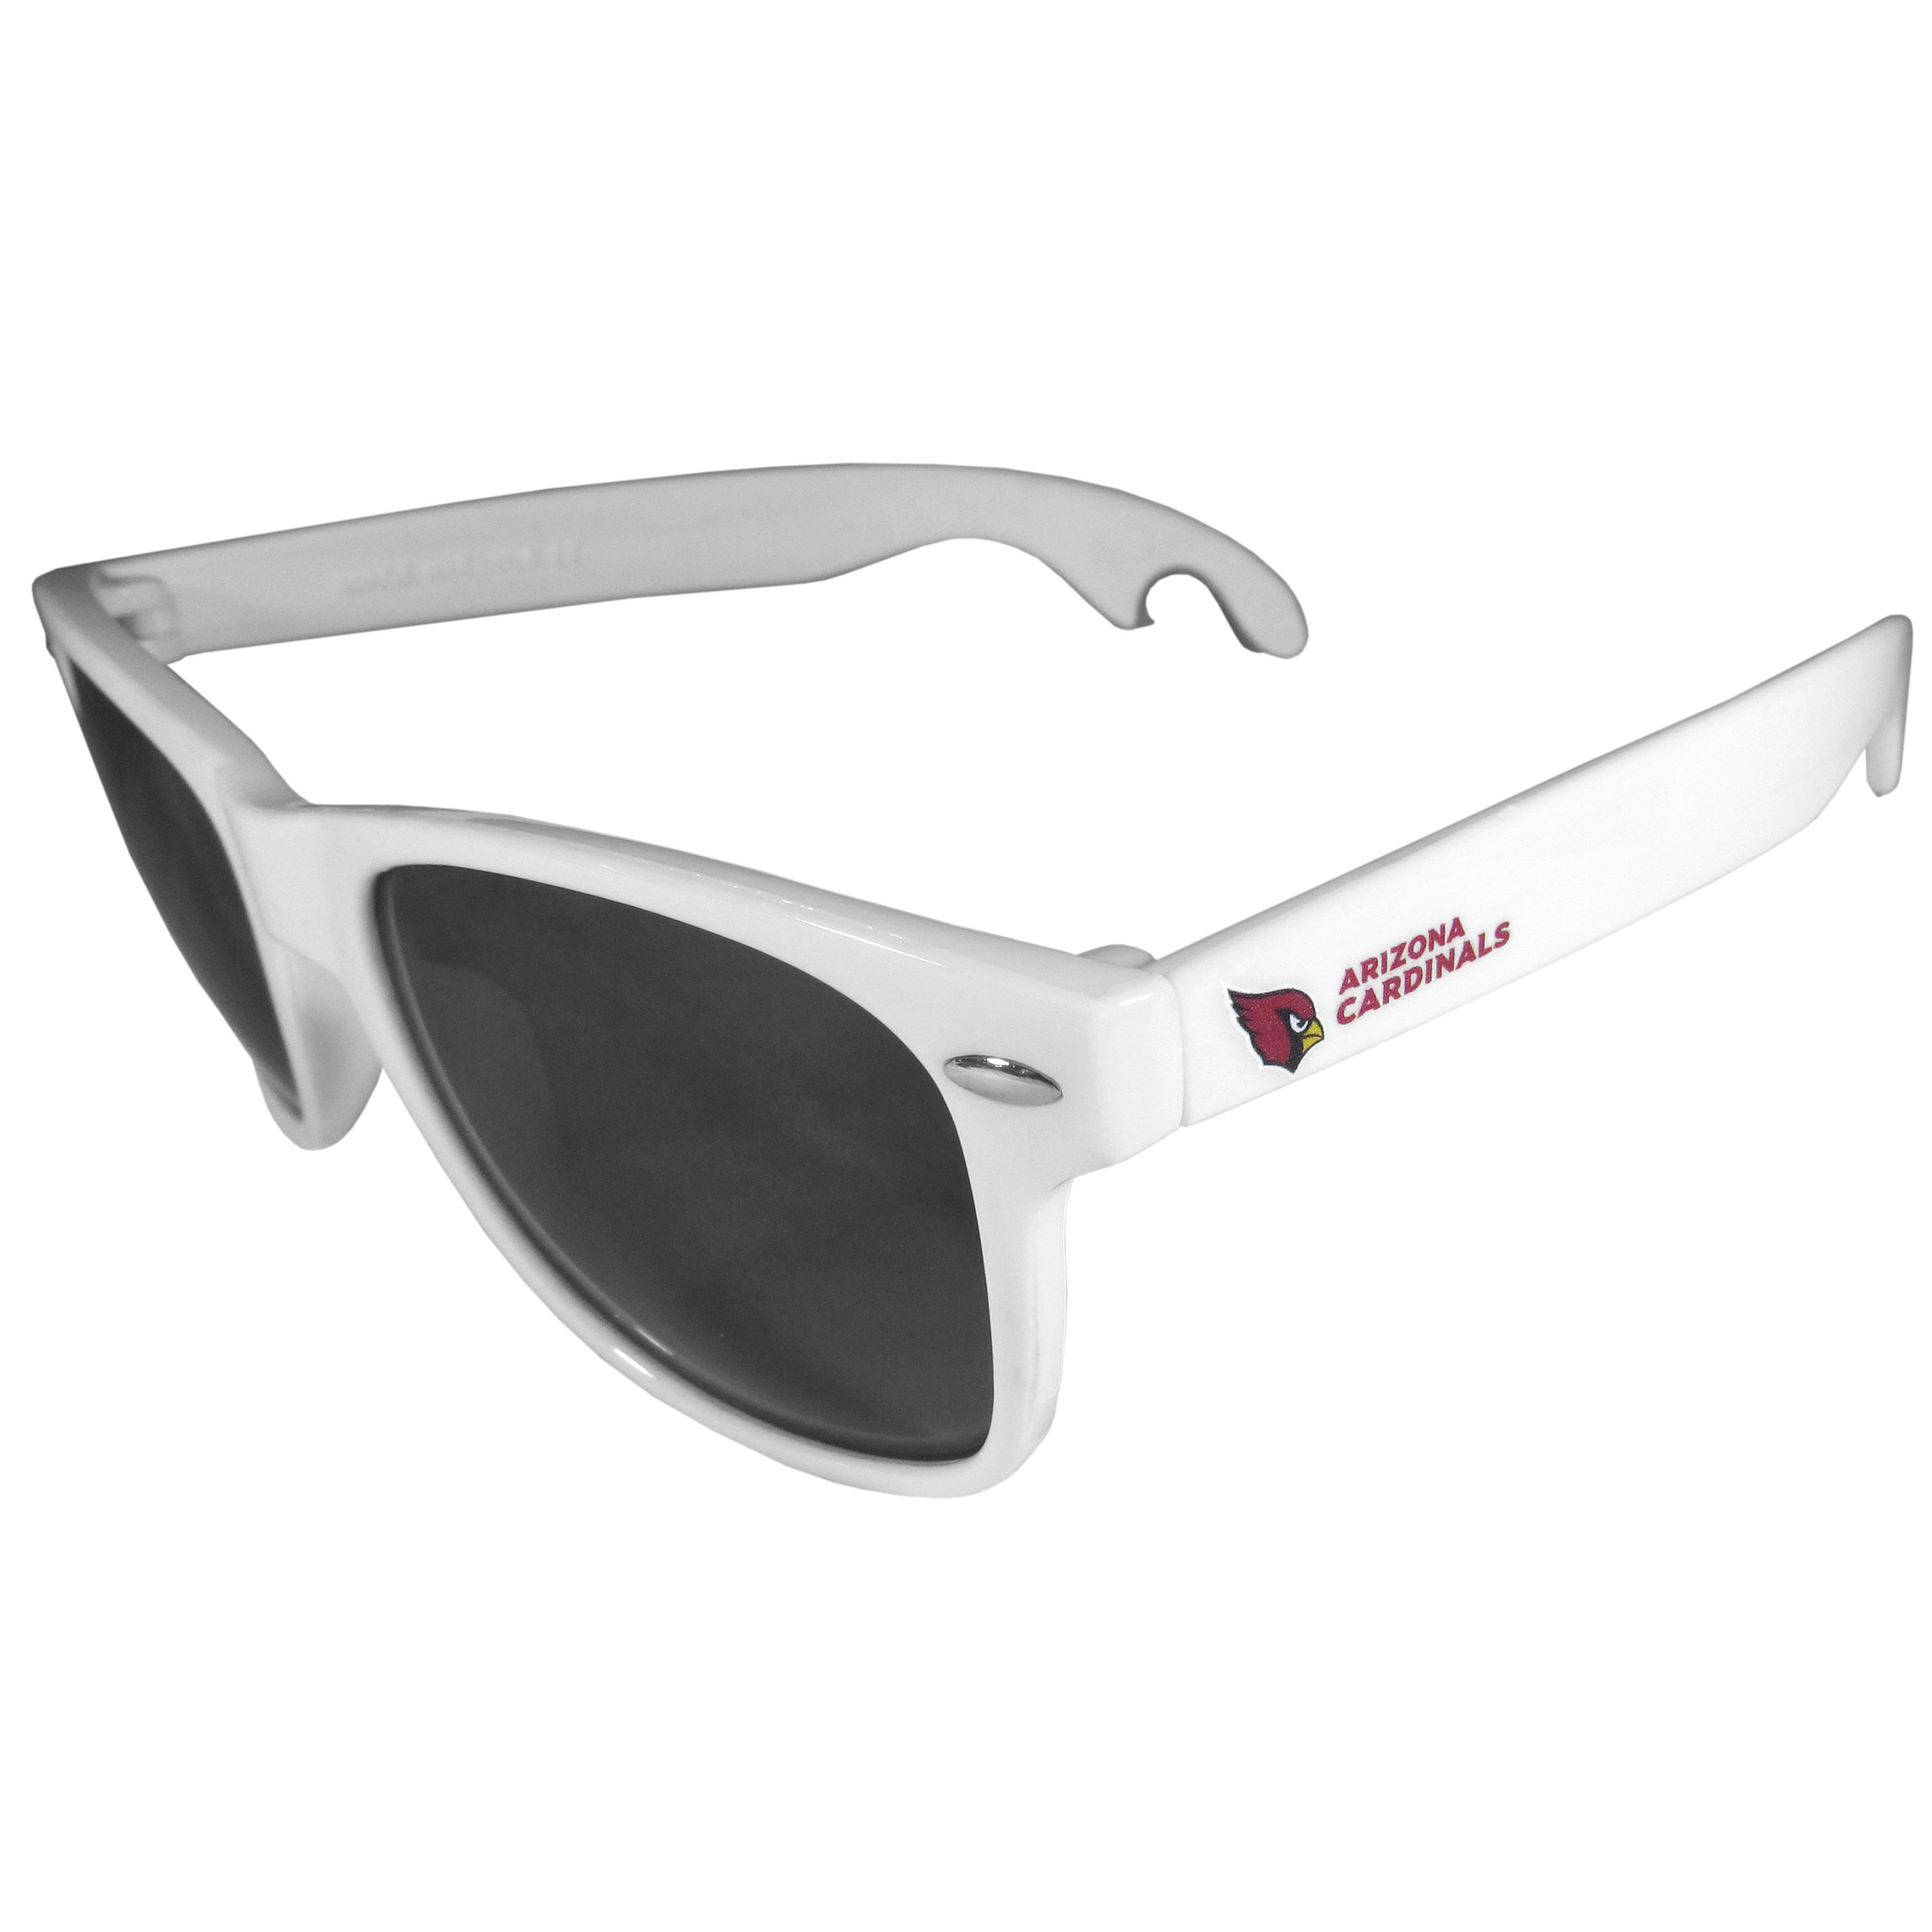 Arizona Cardinals Beachfarer Bottle Opener Sunglasses, White - Seriously, these sunglasses open bottles! Keep the party going with these amazing Arizona Cardinals bottle opener sunglasses. The stylish retro frames feature team designs on the arms and functional bottle openers on the end of the arms. Whether you are at the beach or having a backyard BBQ on game day, these shades will keep your eyes protected with 100% UVA/UVB protection and keep you hydrated with the handy bottle opener arms.